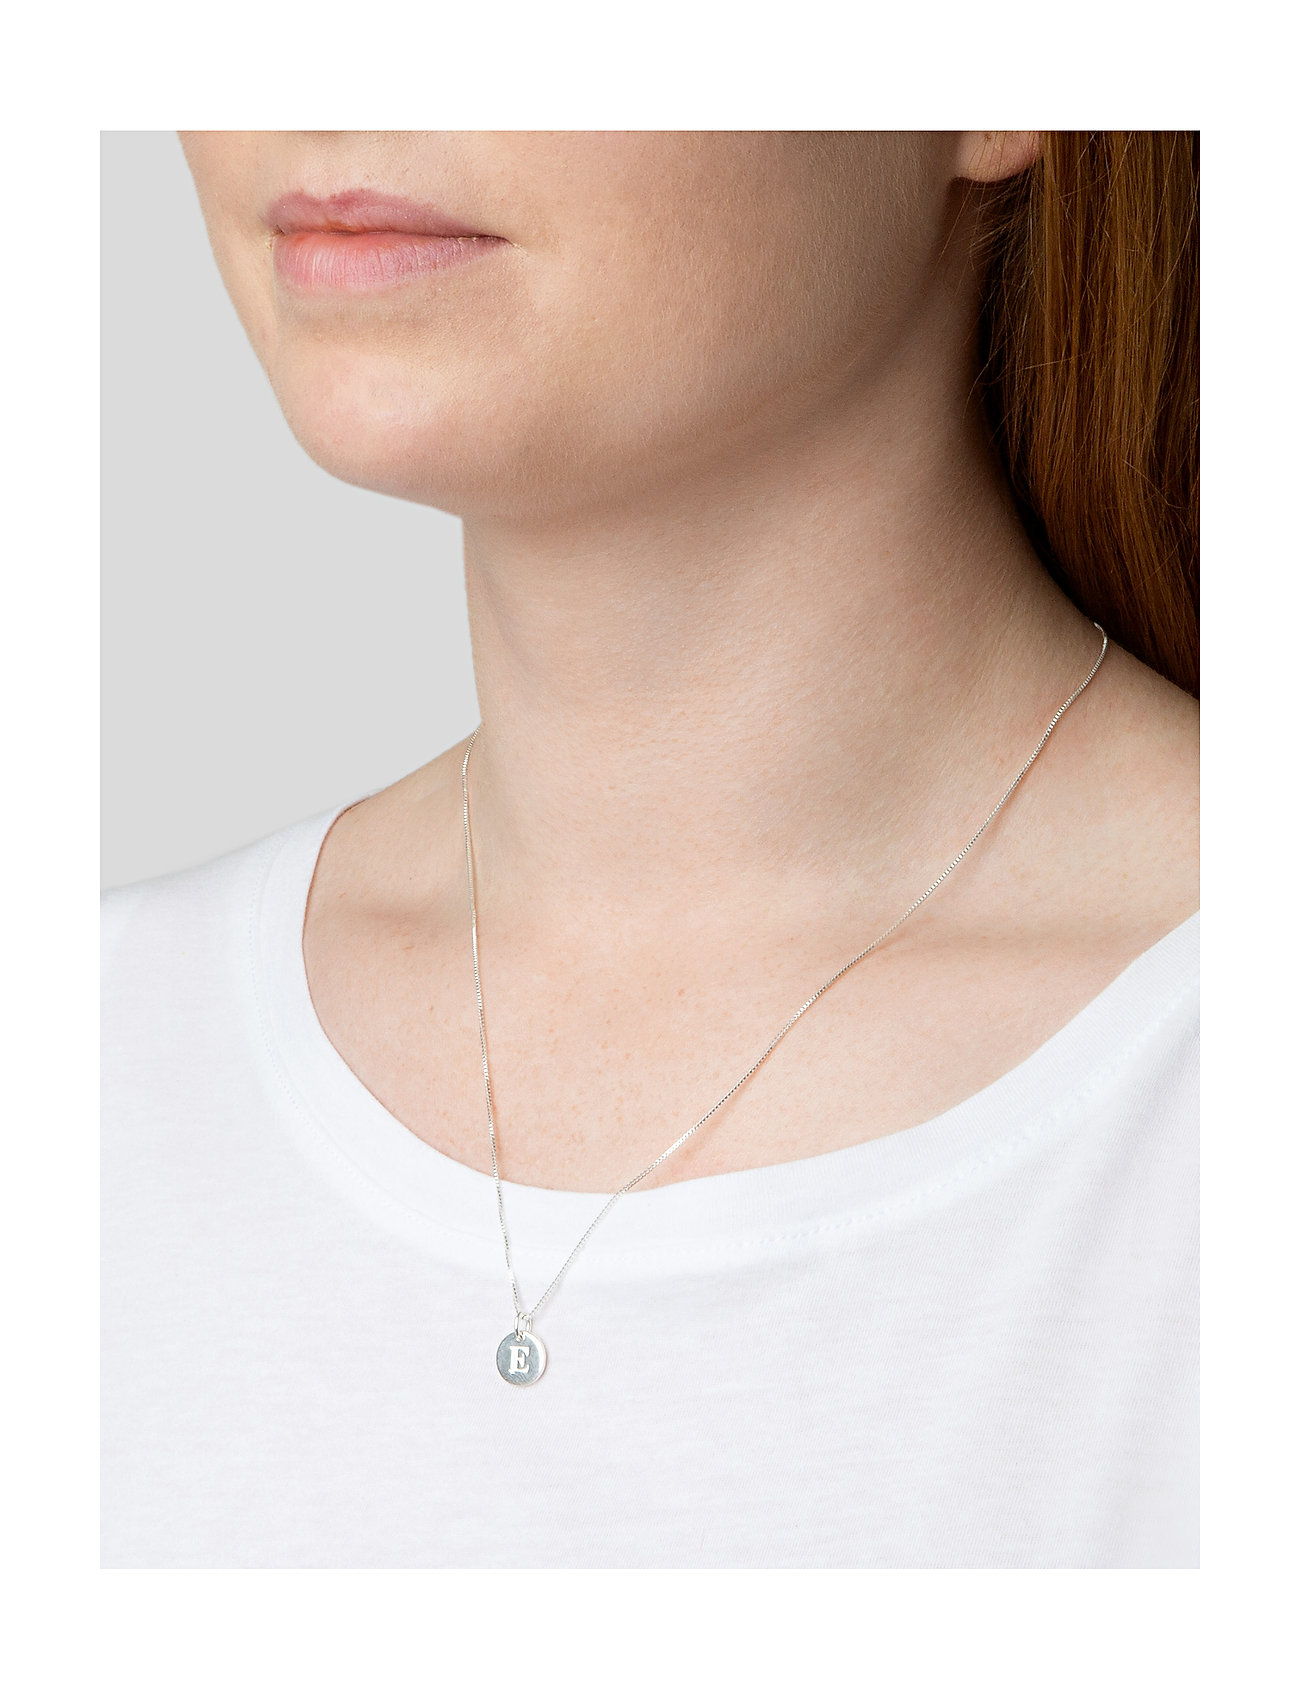 Syster P - Beloved Medium Box Chain Silver - kettingen  - silver - 1